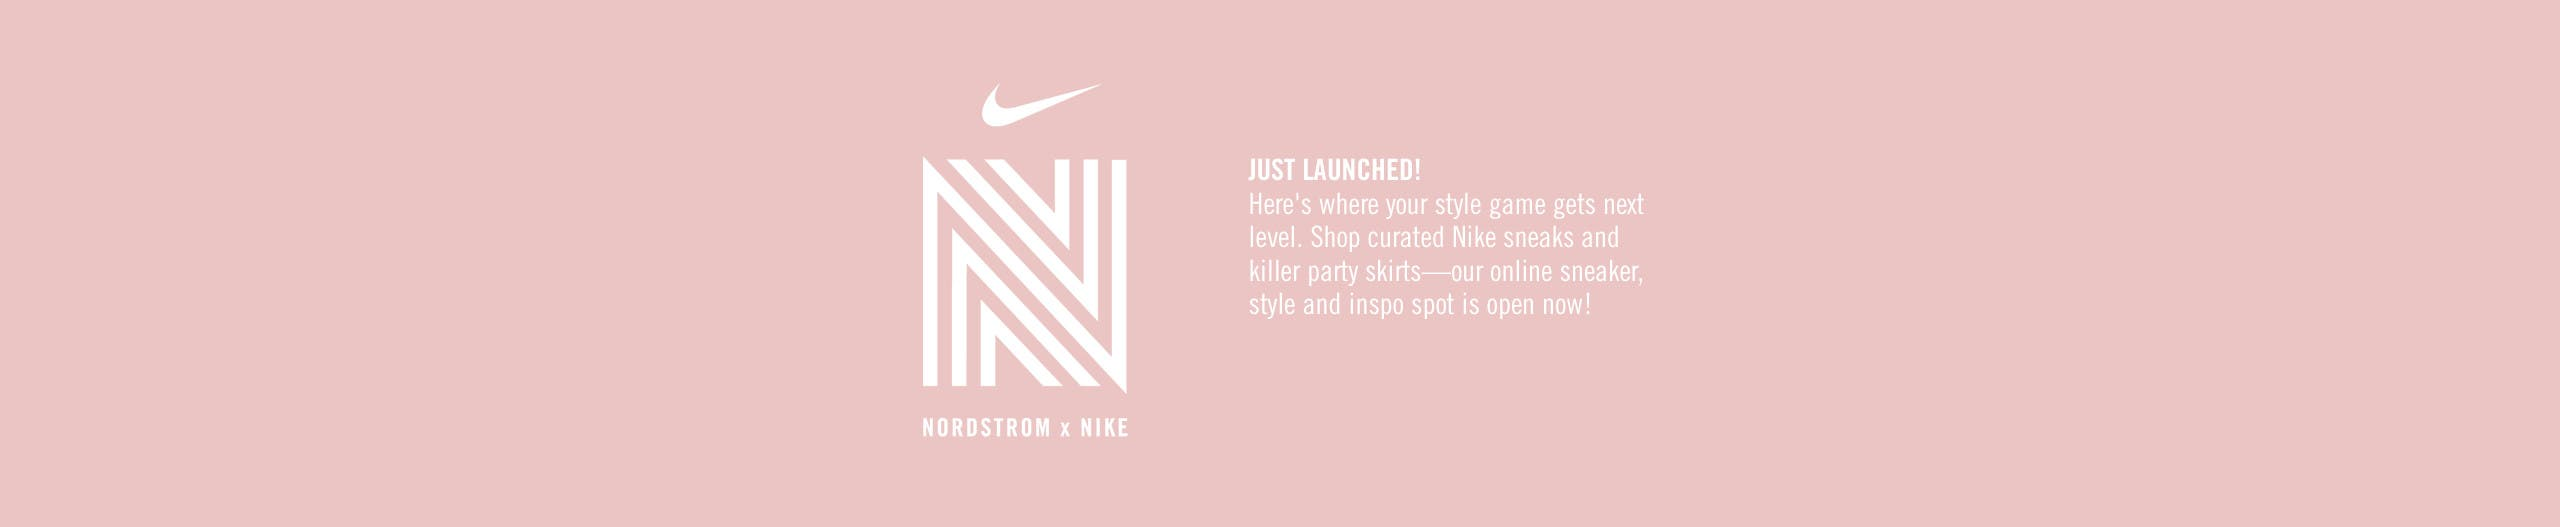 Just launched: Nordstrom x Nike collaboration.